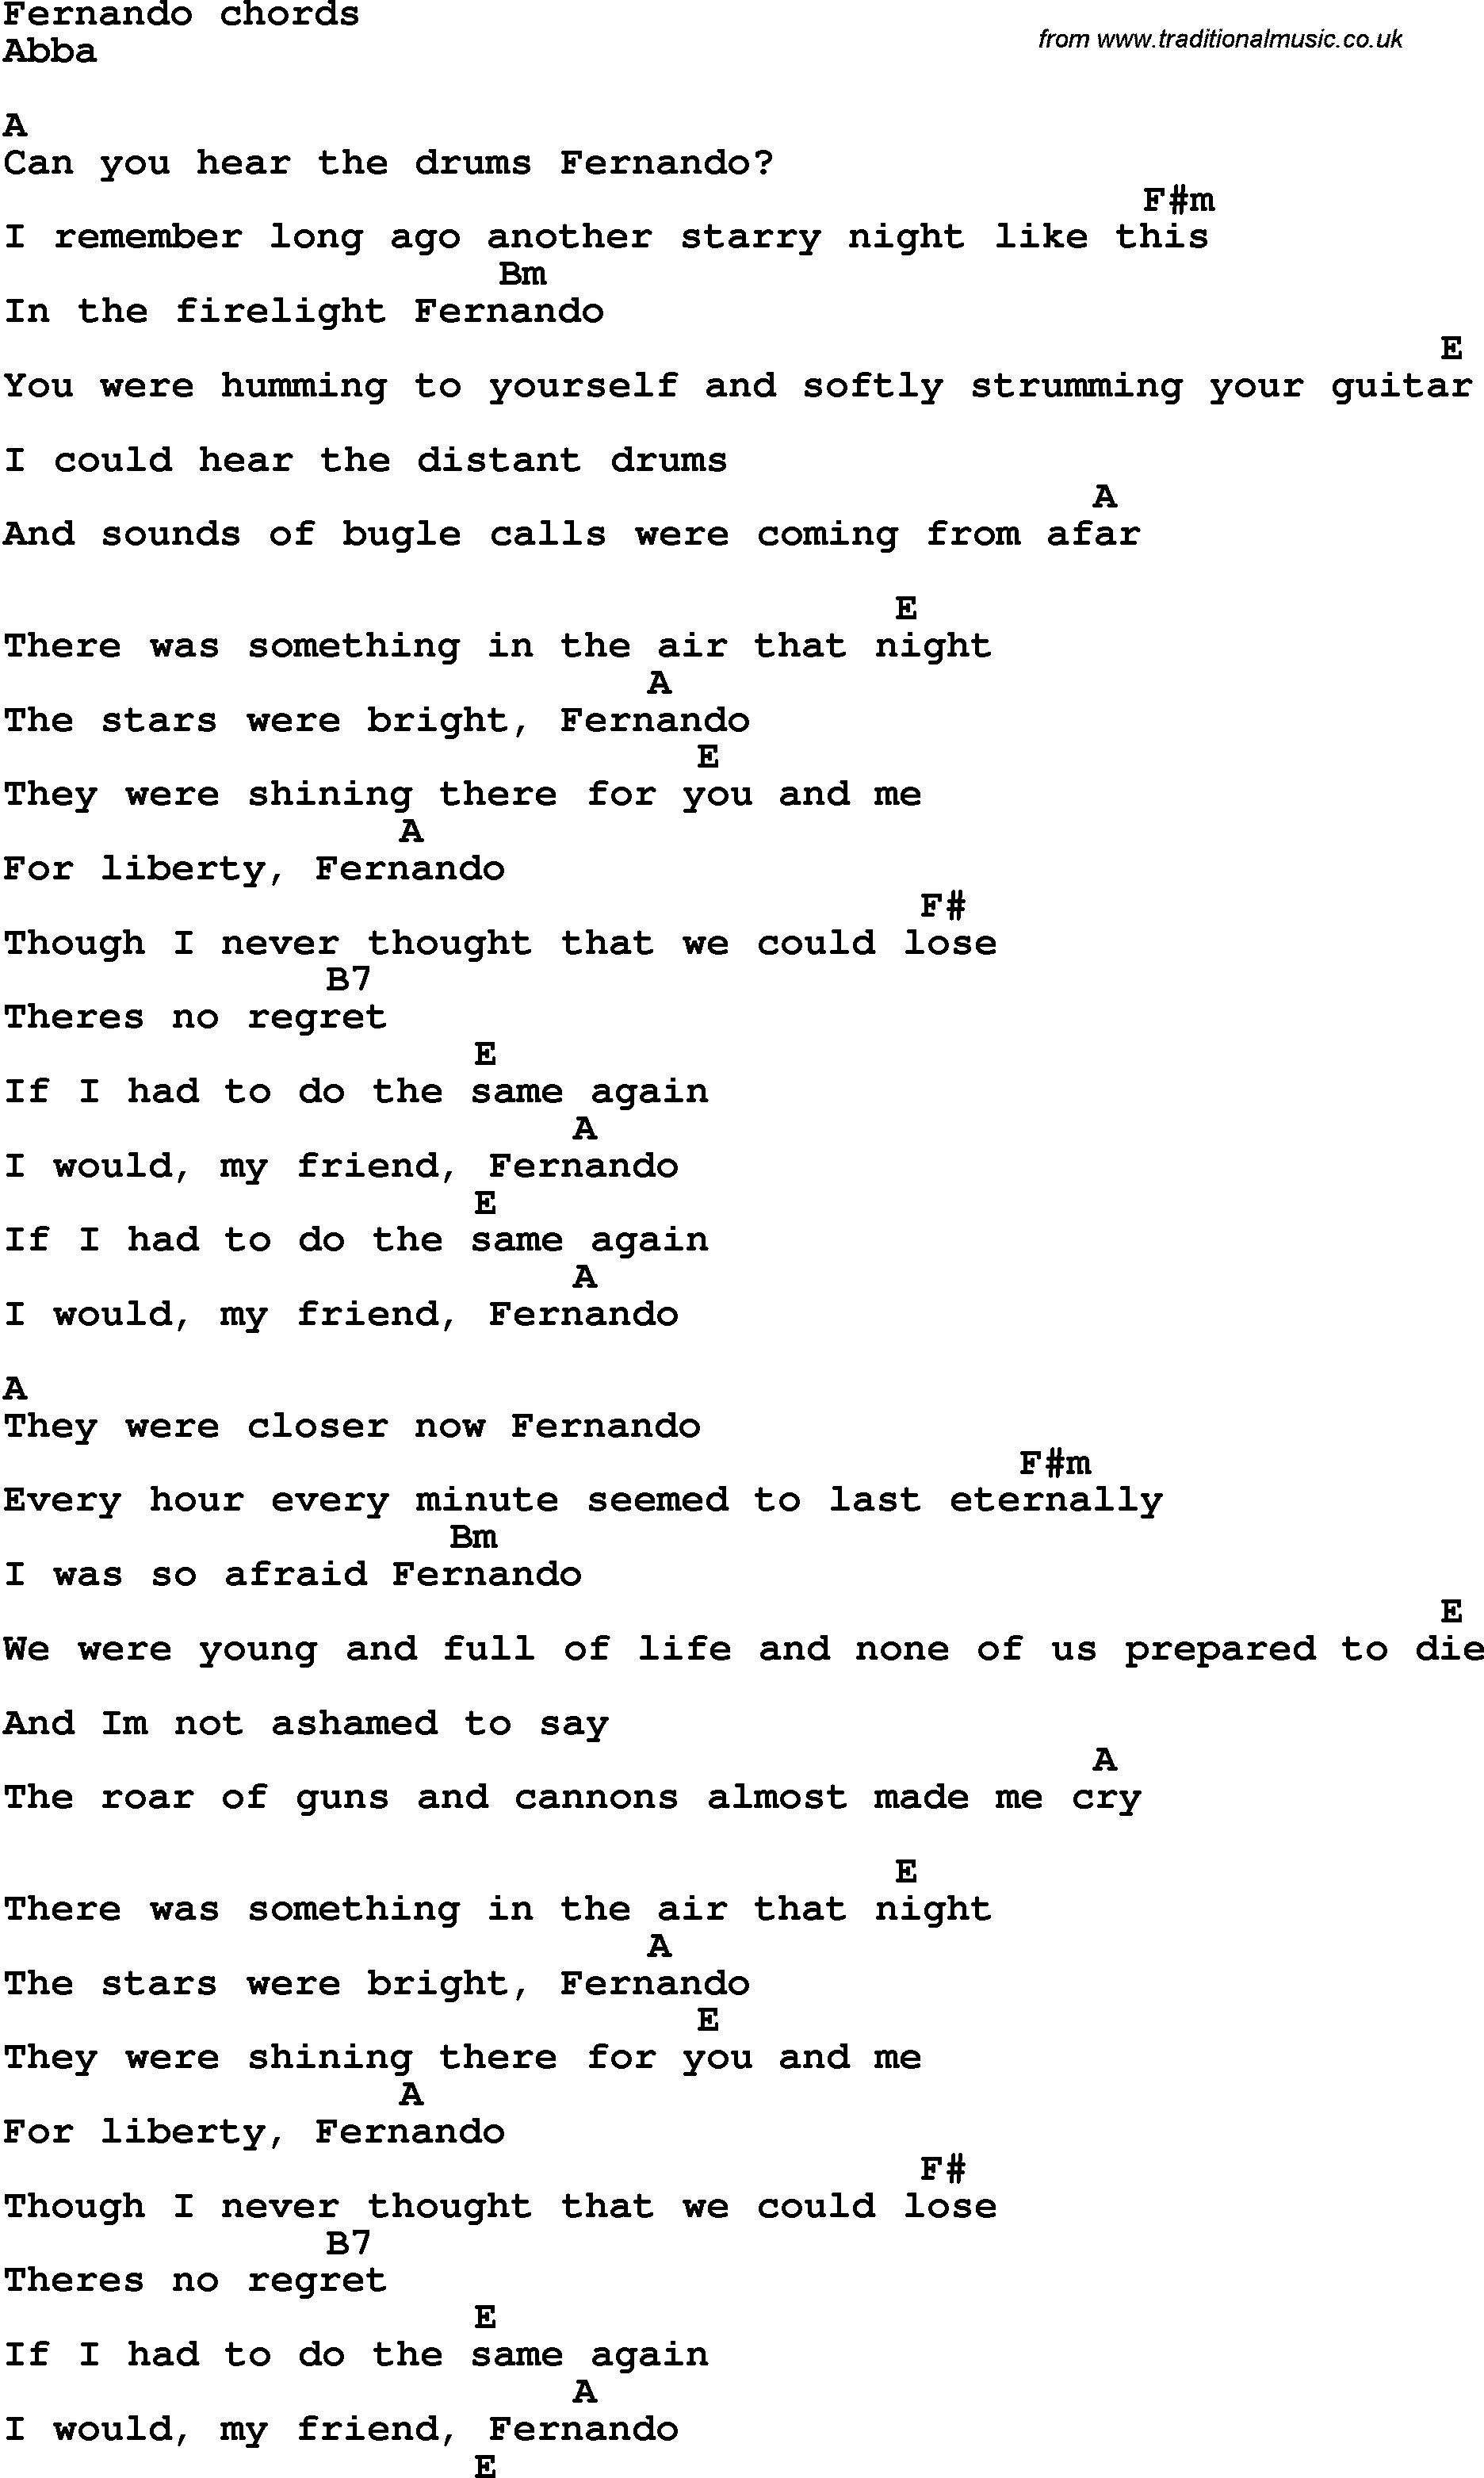 Song Lyrics With Guitar Chords For Fernando